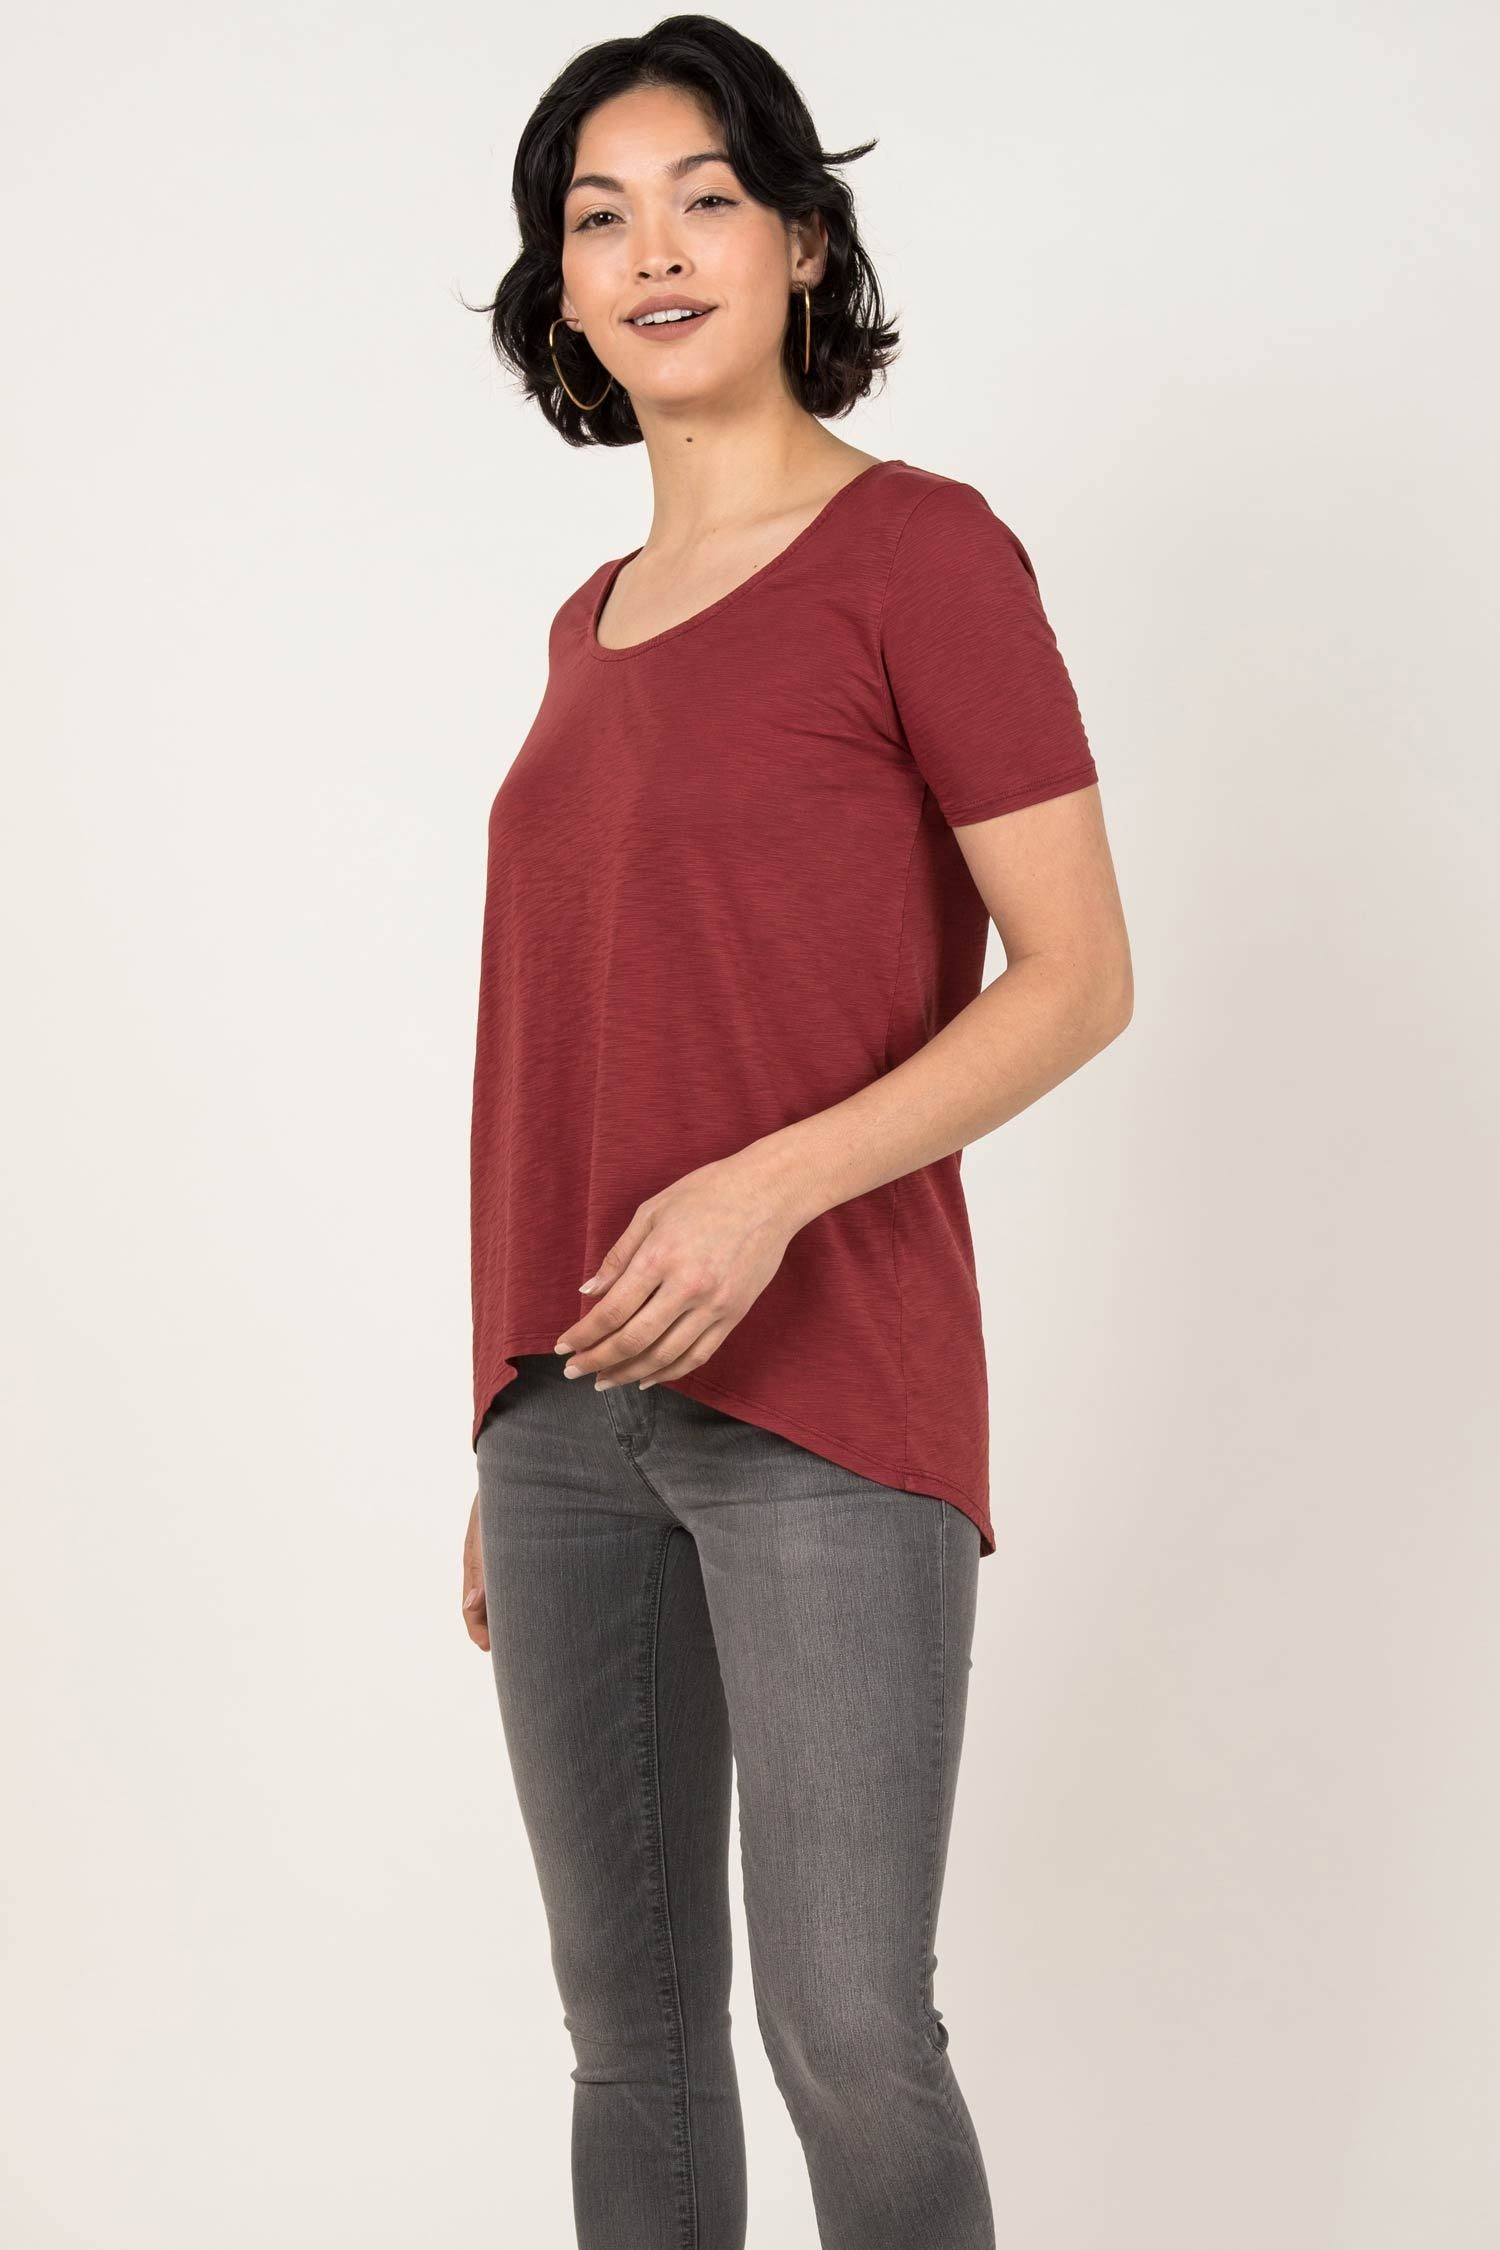 Womens Organic Cotton Tee Shirt | Essential Slub U Neck Top | Cherry Red